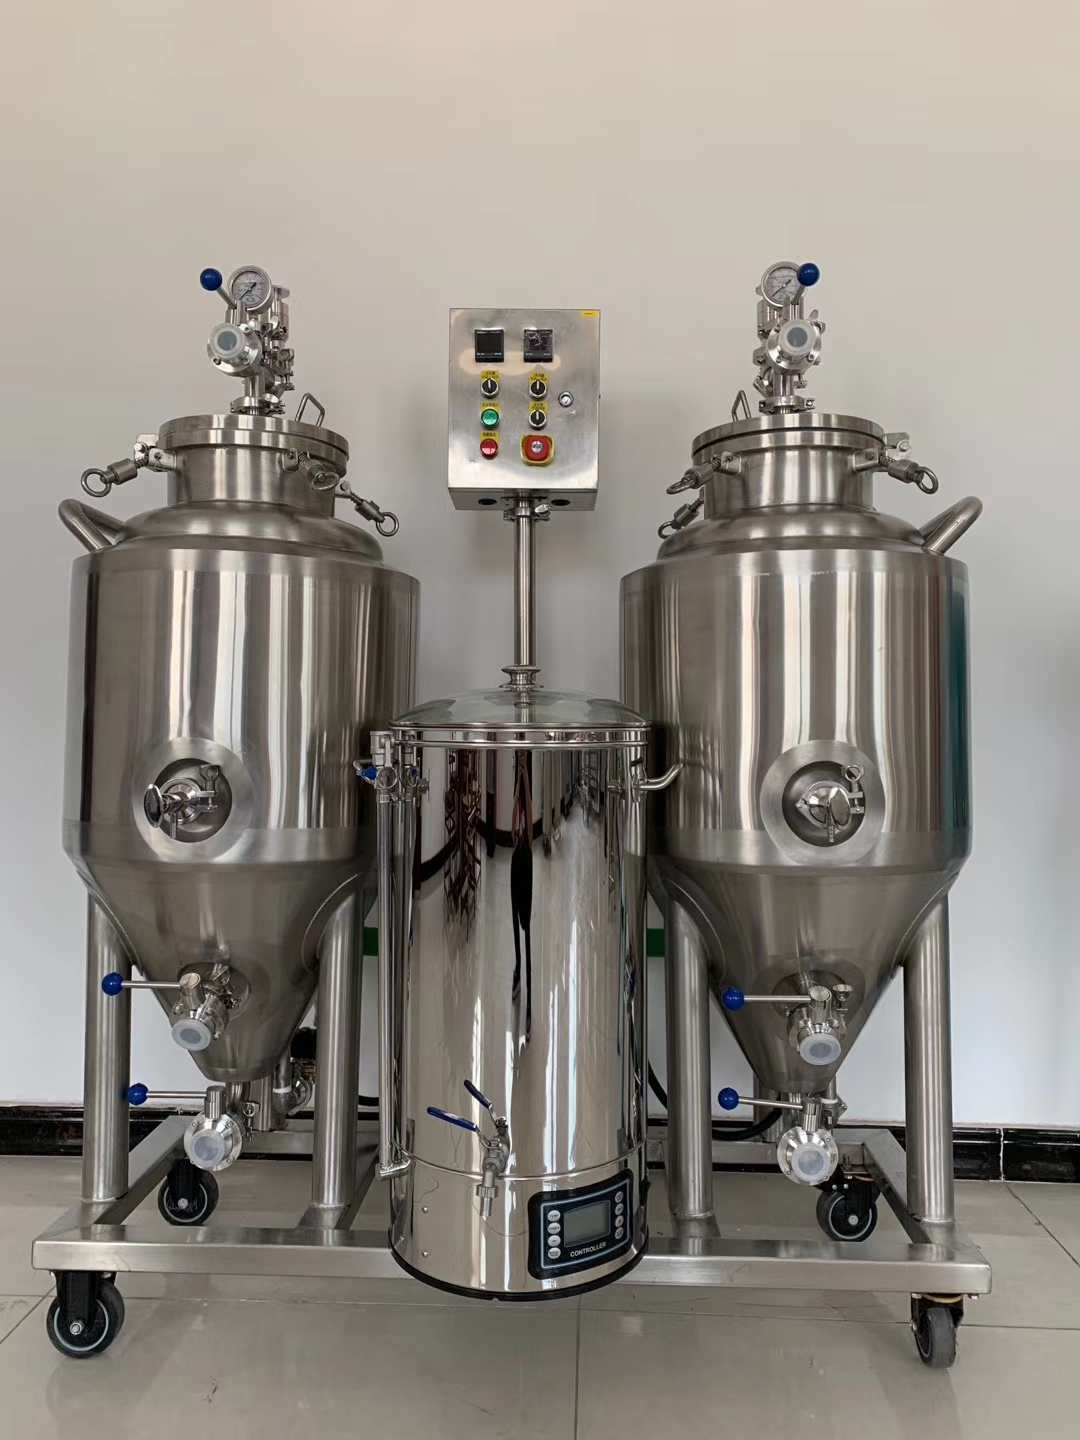 France high quality stainless steel home beer brewing equipment from China factory supplier  W1